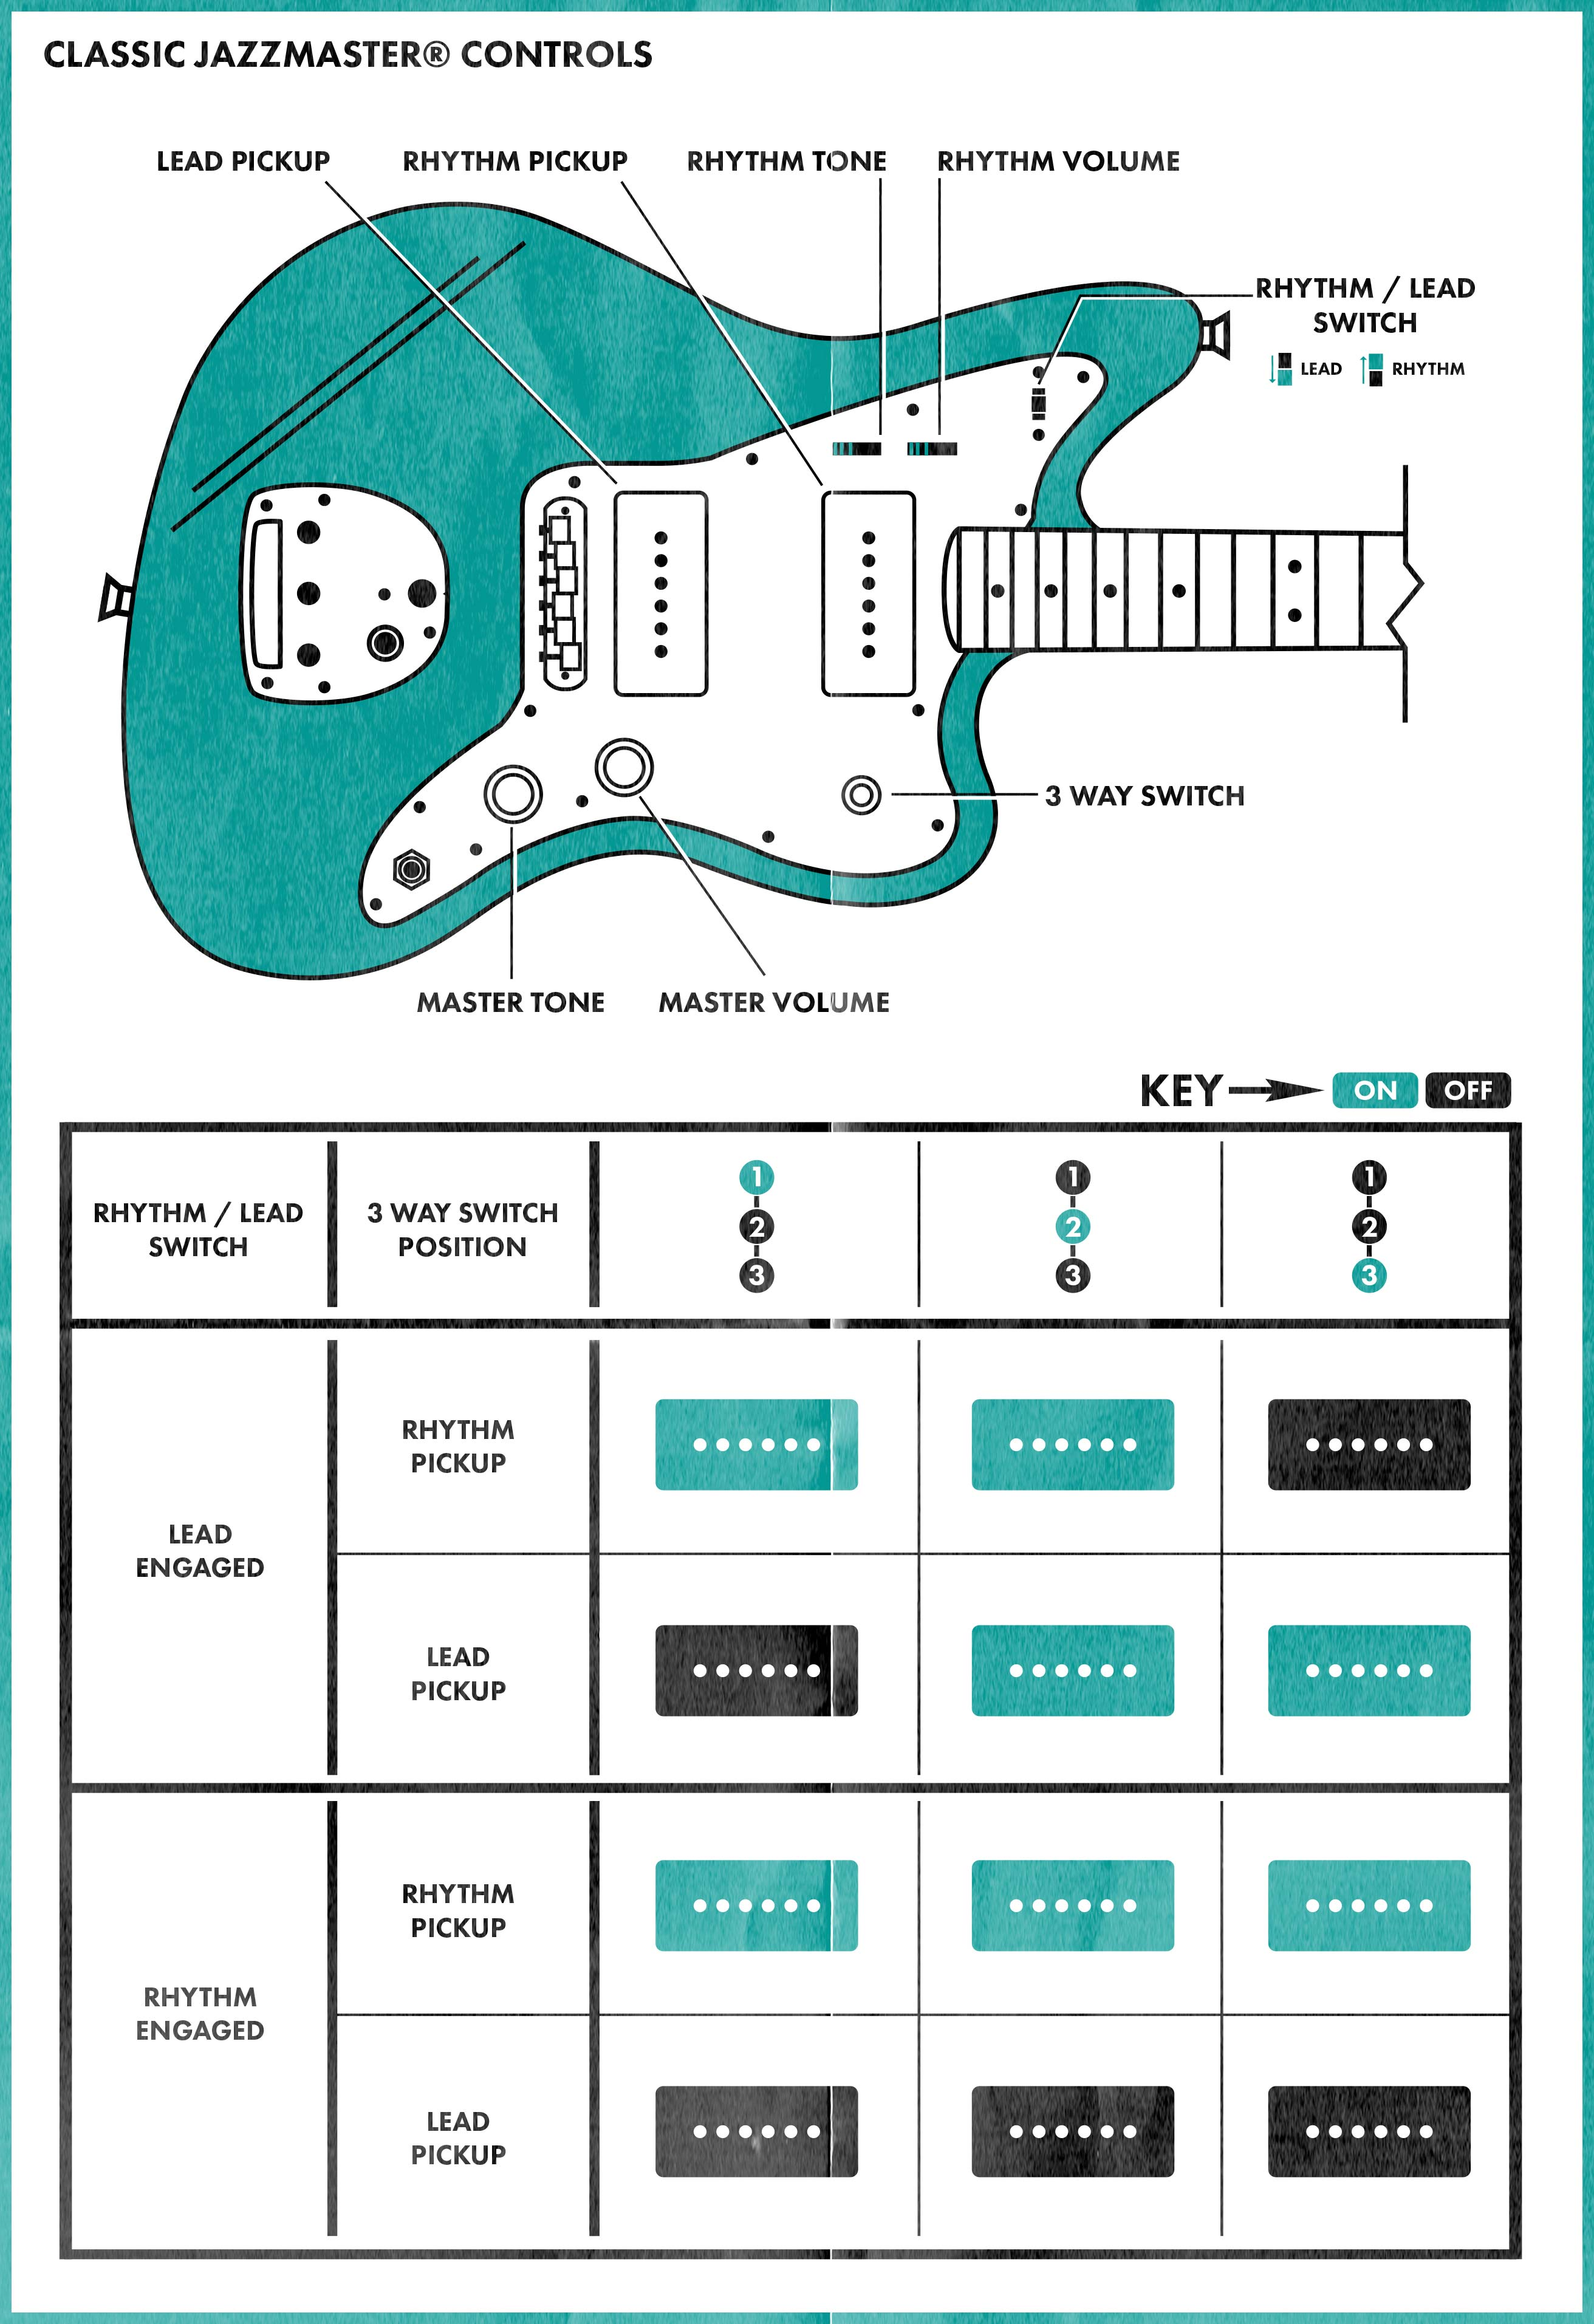 squier stratocaster wiring diagram dixon lawn mower parts jazzmaster controls explained fender